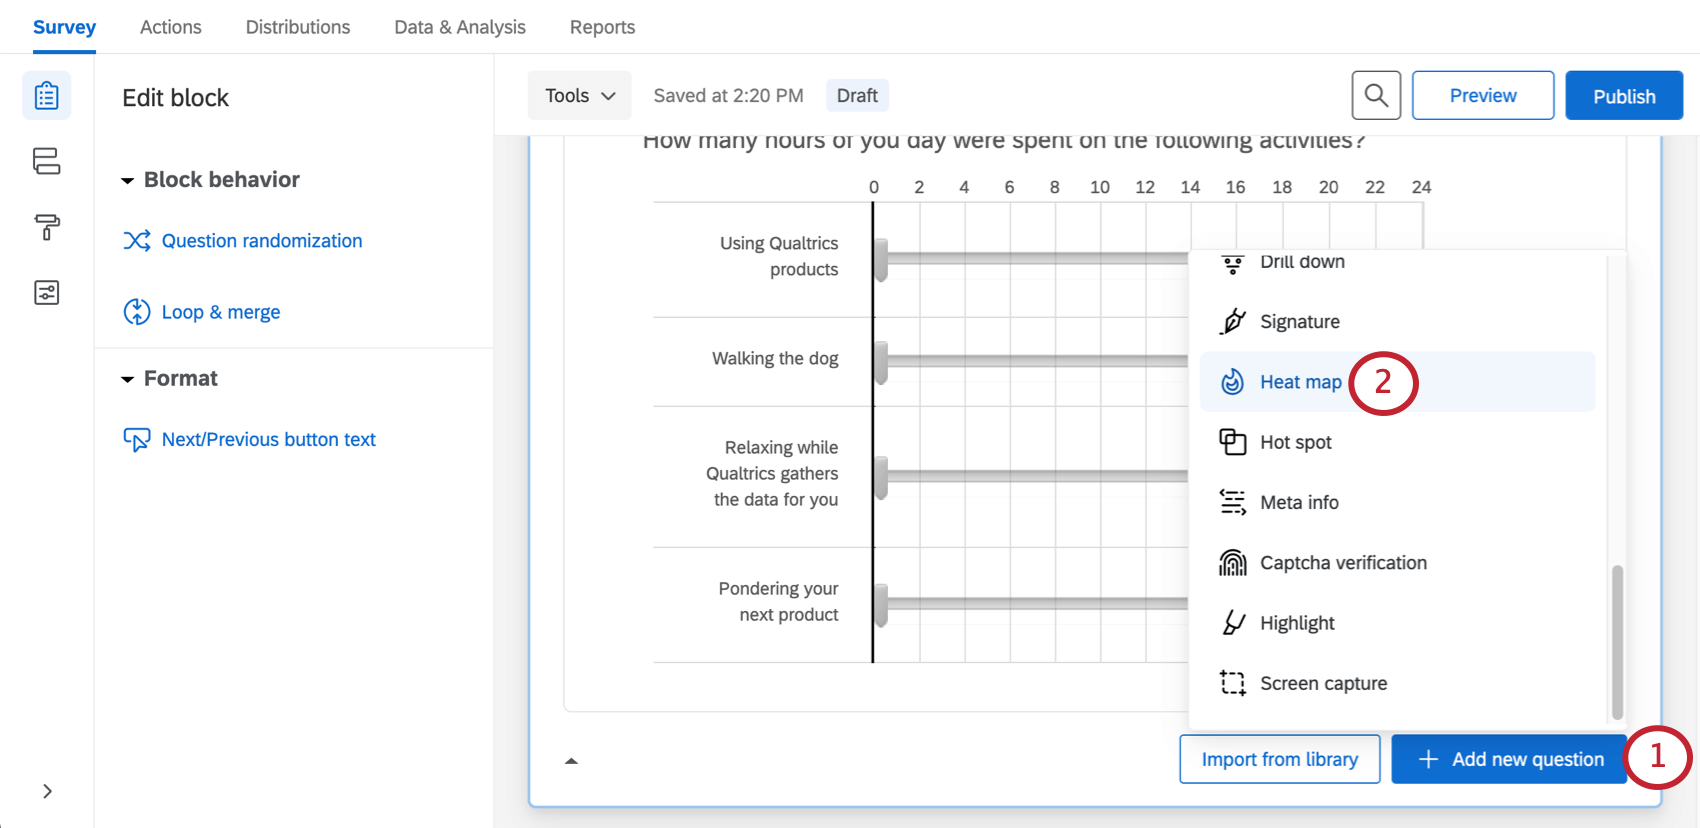 Add new question button bottom-right block, menu with question types opens from it